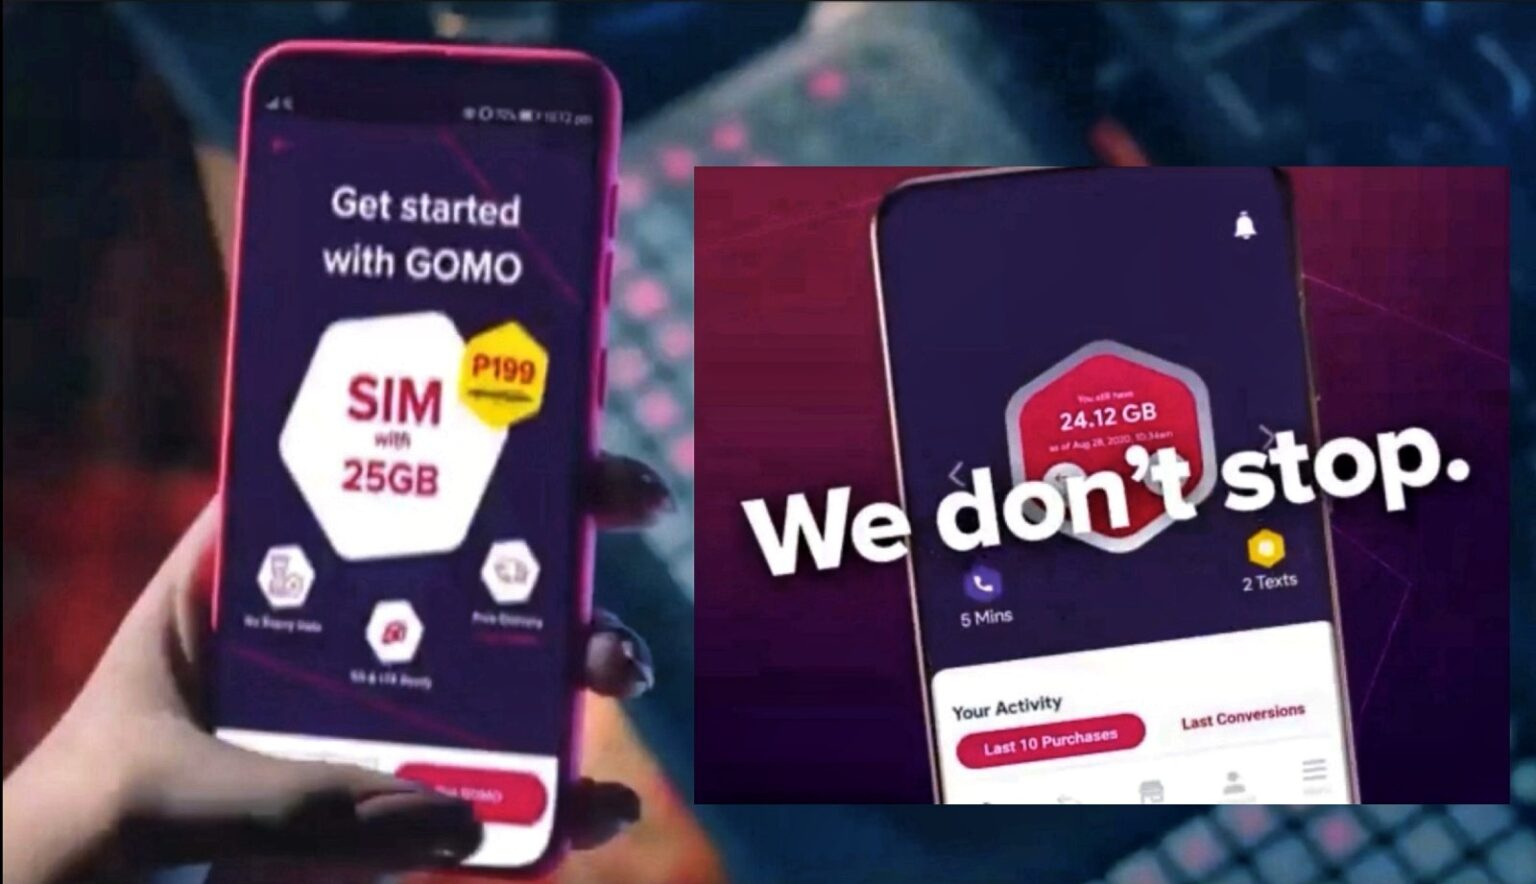 GOMO unveils no-expiry and unlimited data